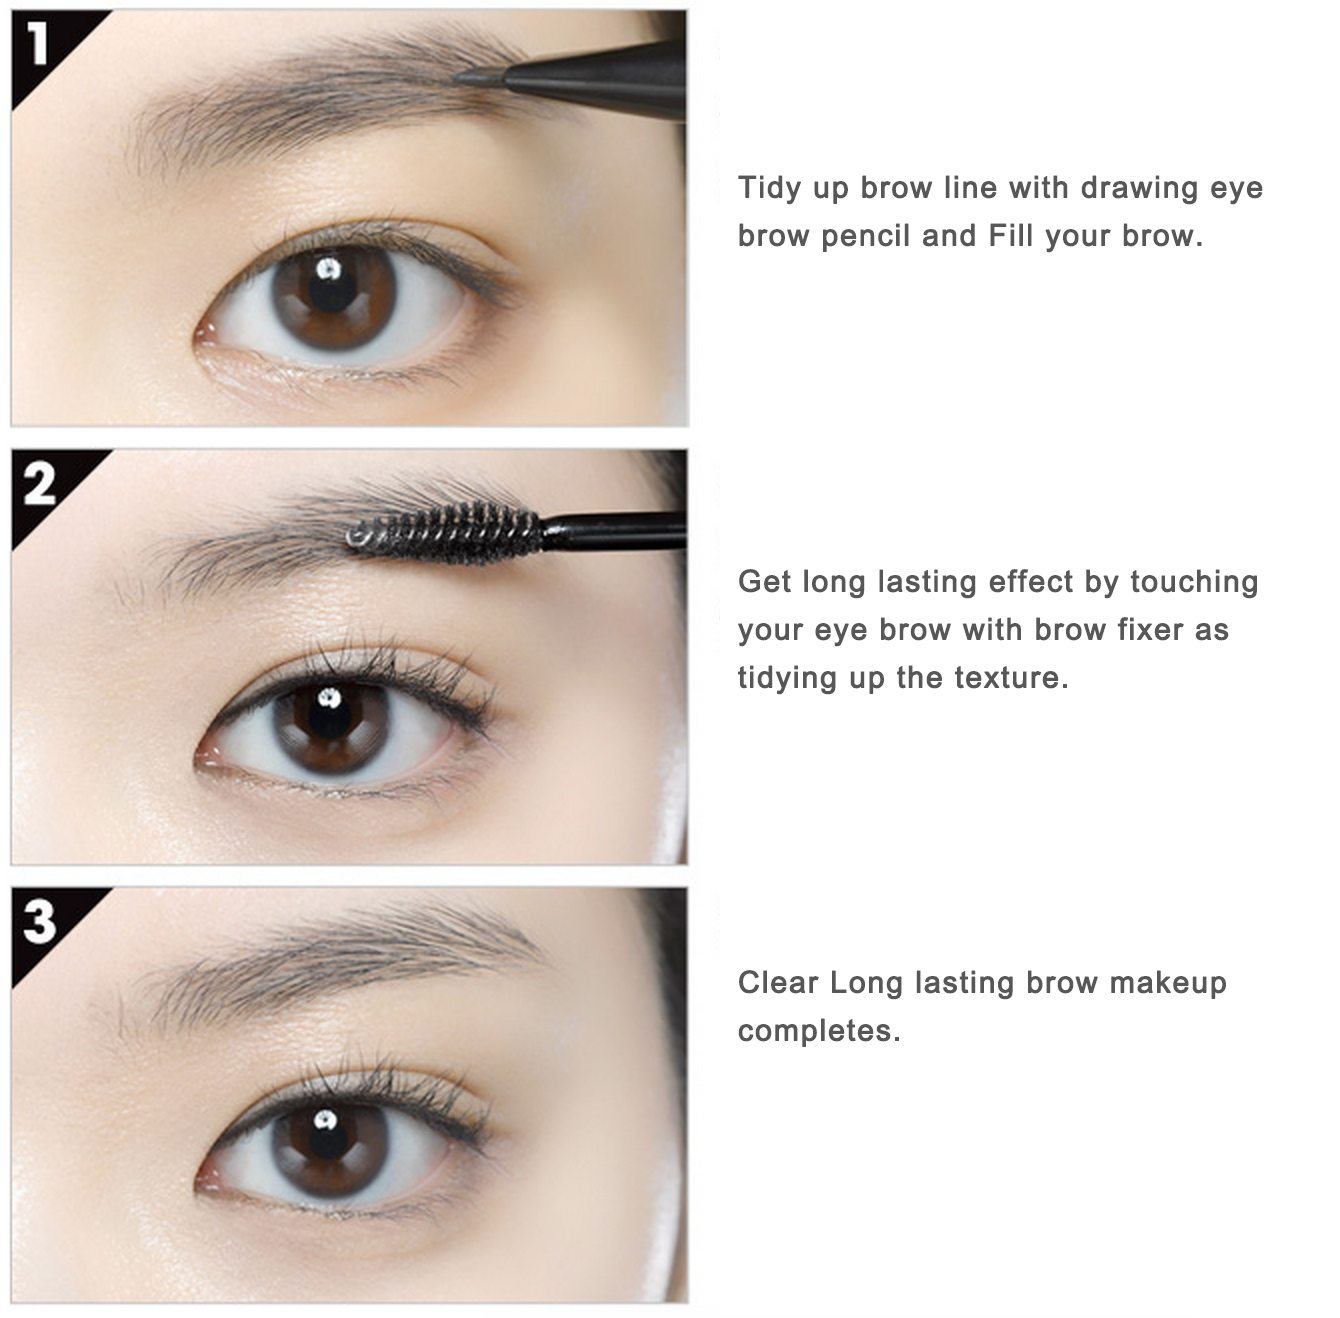 Etude House Keep My Brows Fixer 9g malaysia singapore indonesia